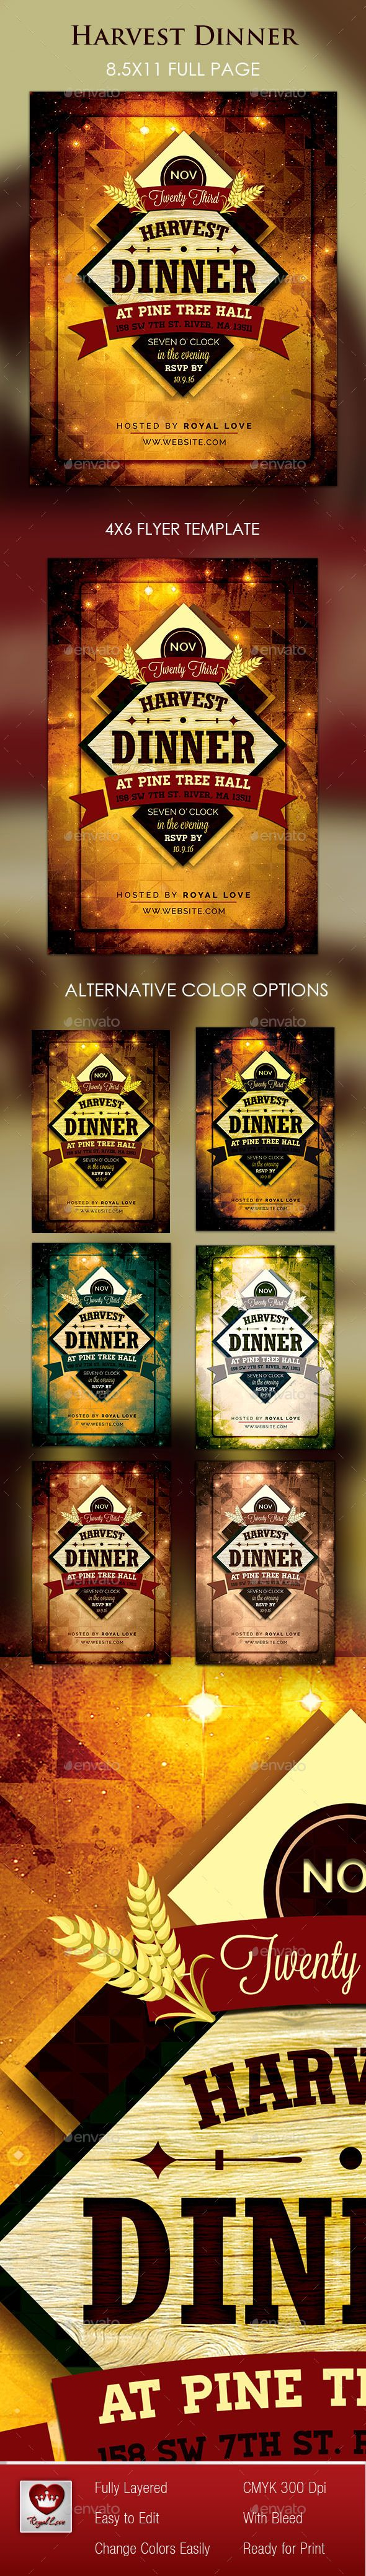 Harvest Dinner Flyer  Flyer Template Template And Event Flyers